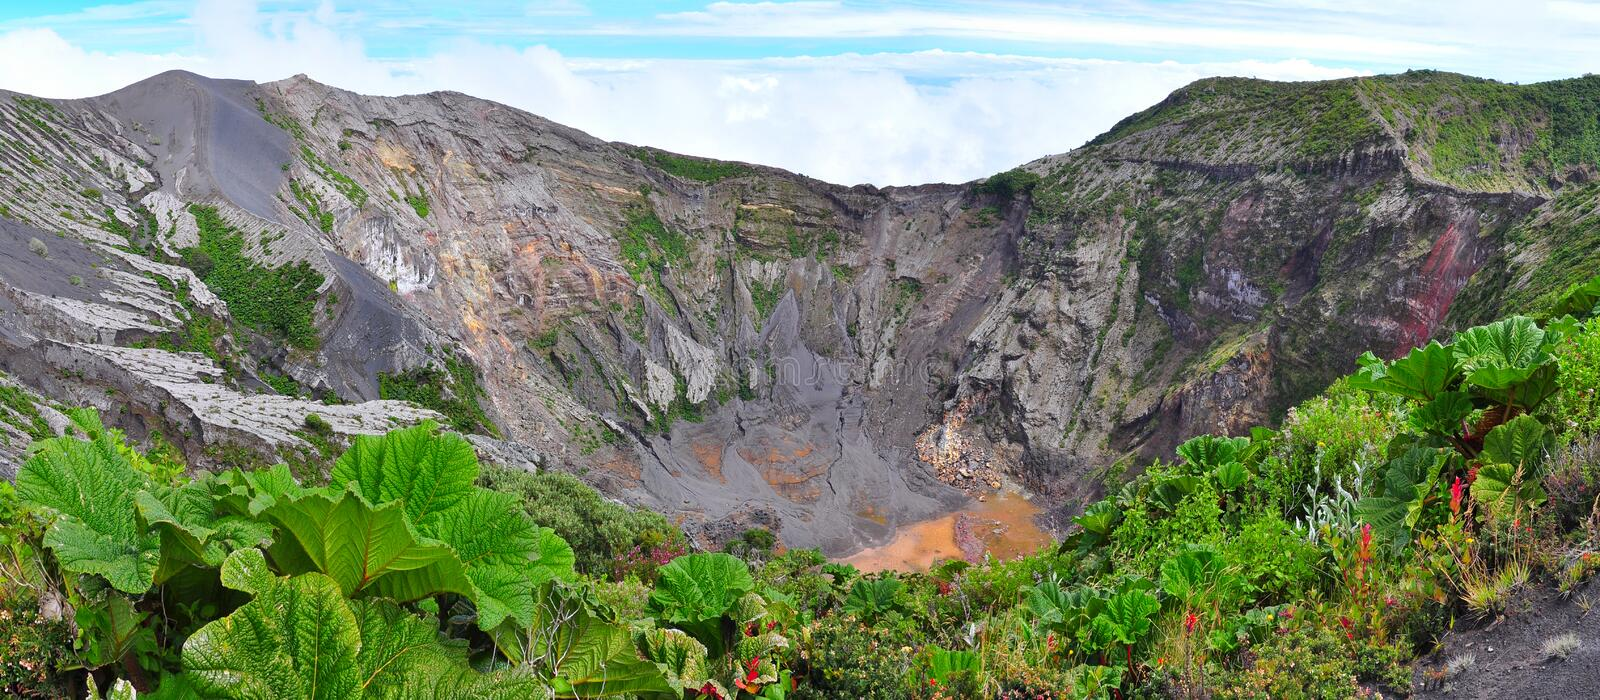 Download Irazu Volcano Crater, Costa Rica Royalty Free Stock Image - Image: 16785026